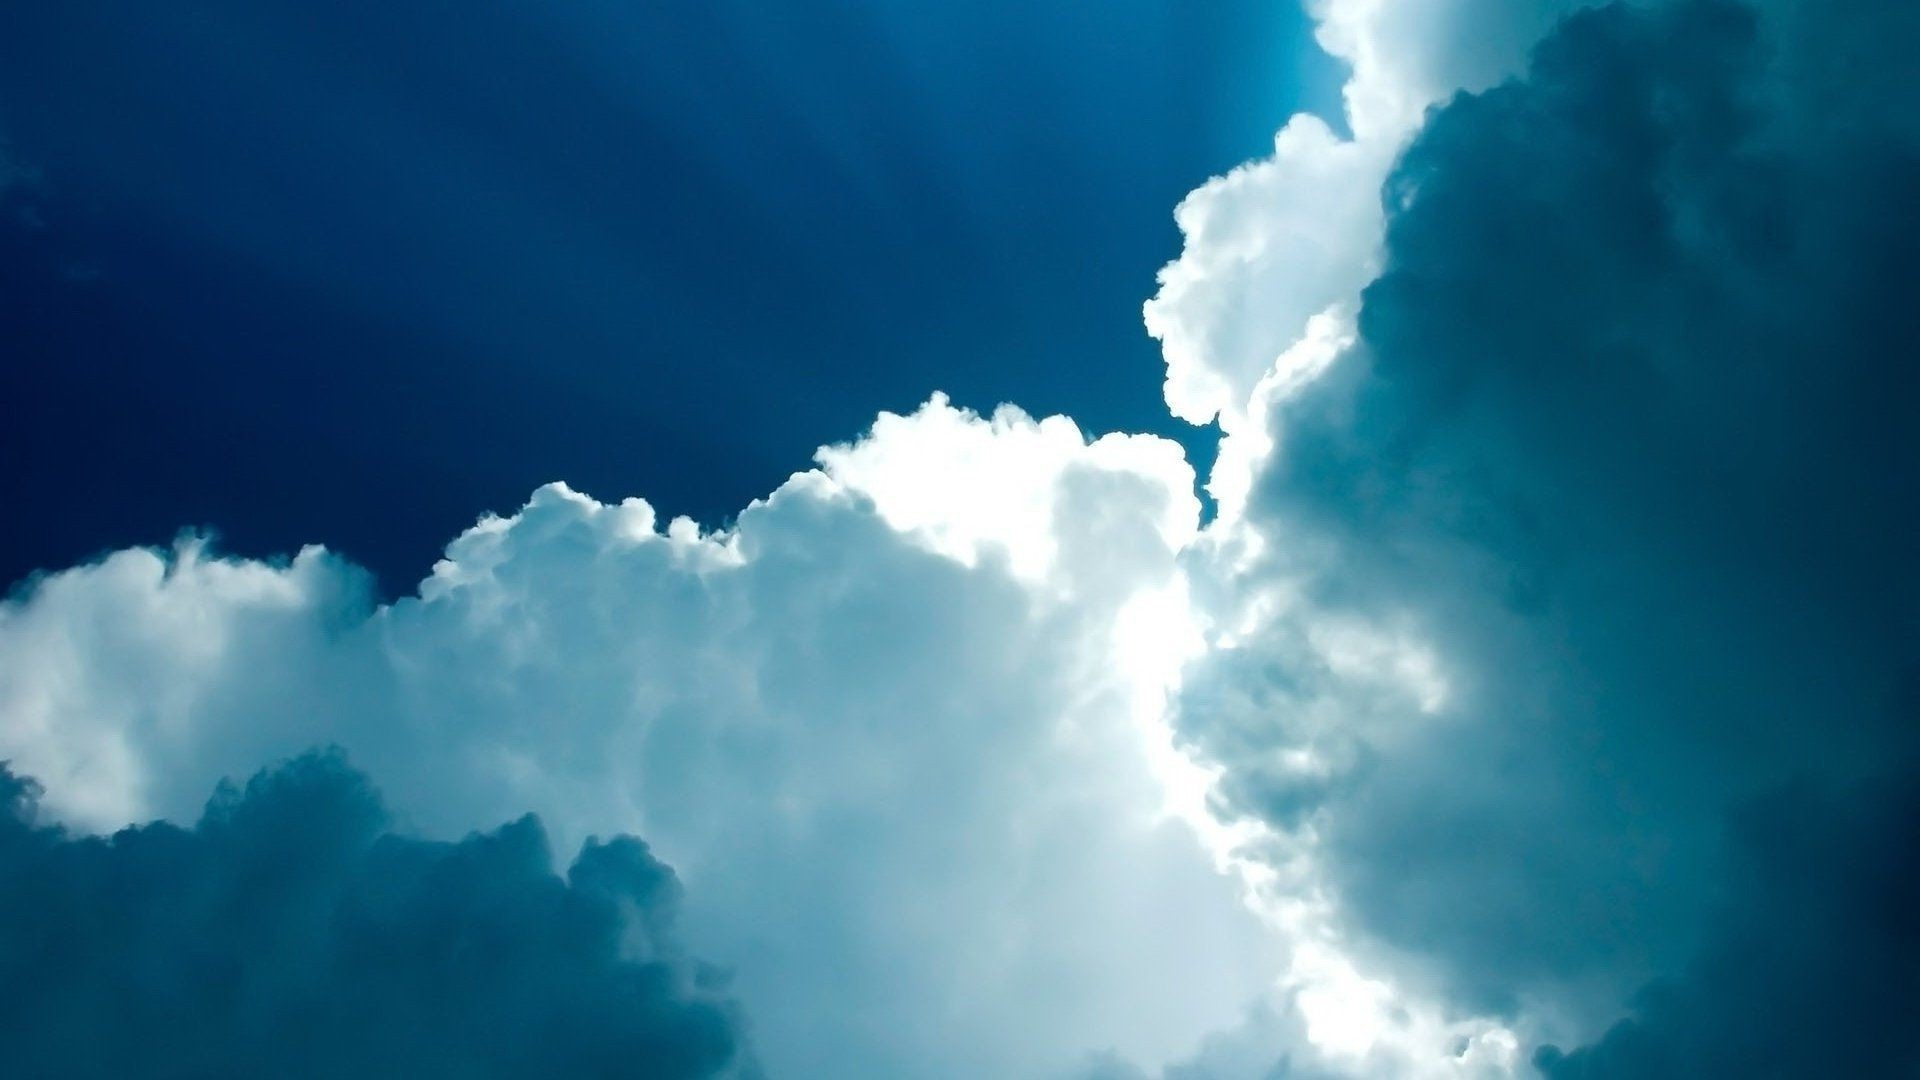 Blue Cloud Free Wallpaper and Background